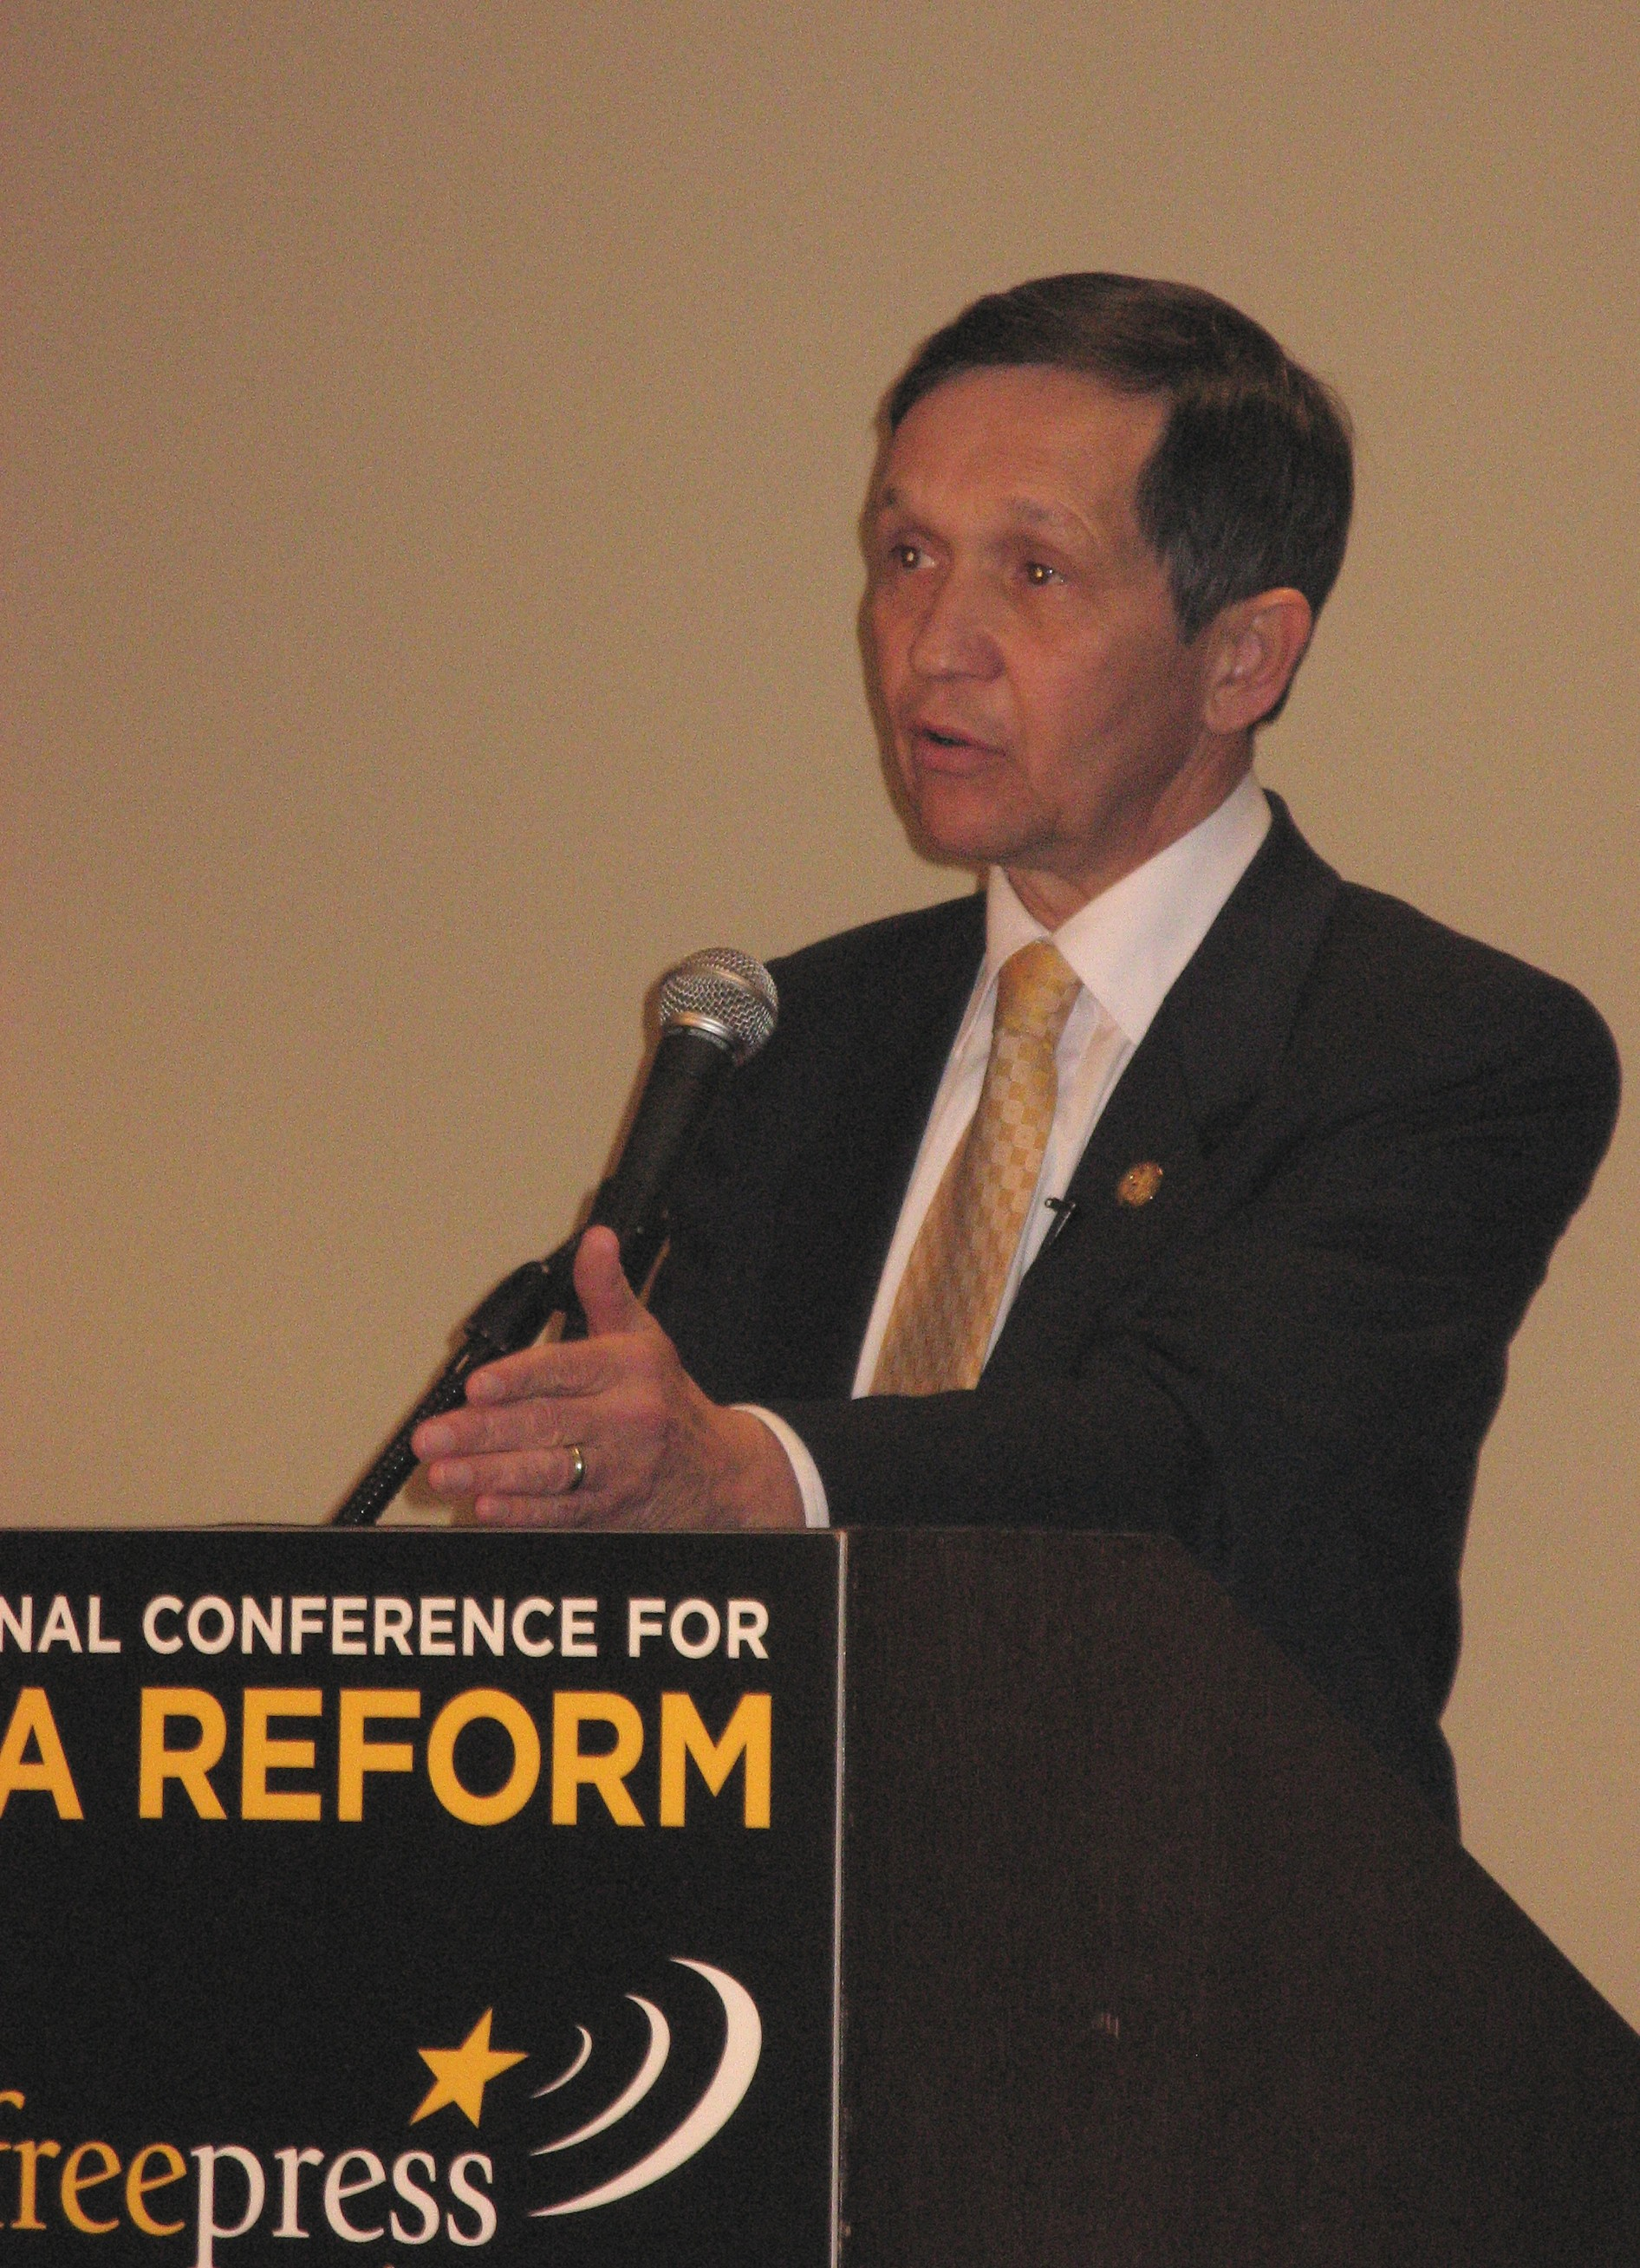 http://dangerousintersection.org/wp-content/uploads/2007/01/kucinich1.jpg